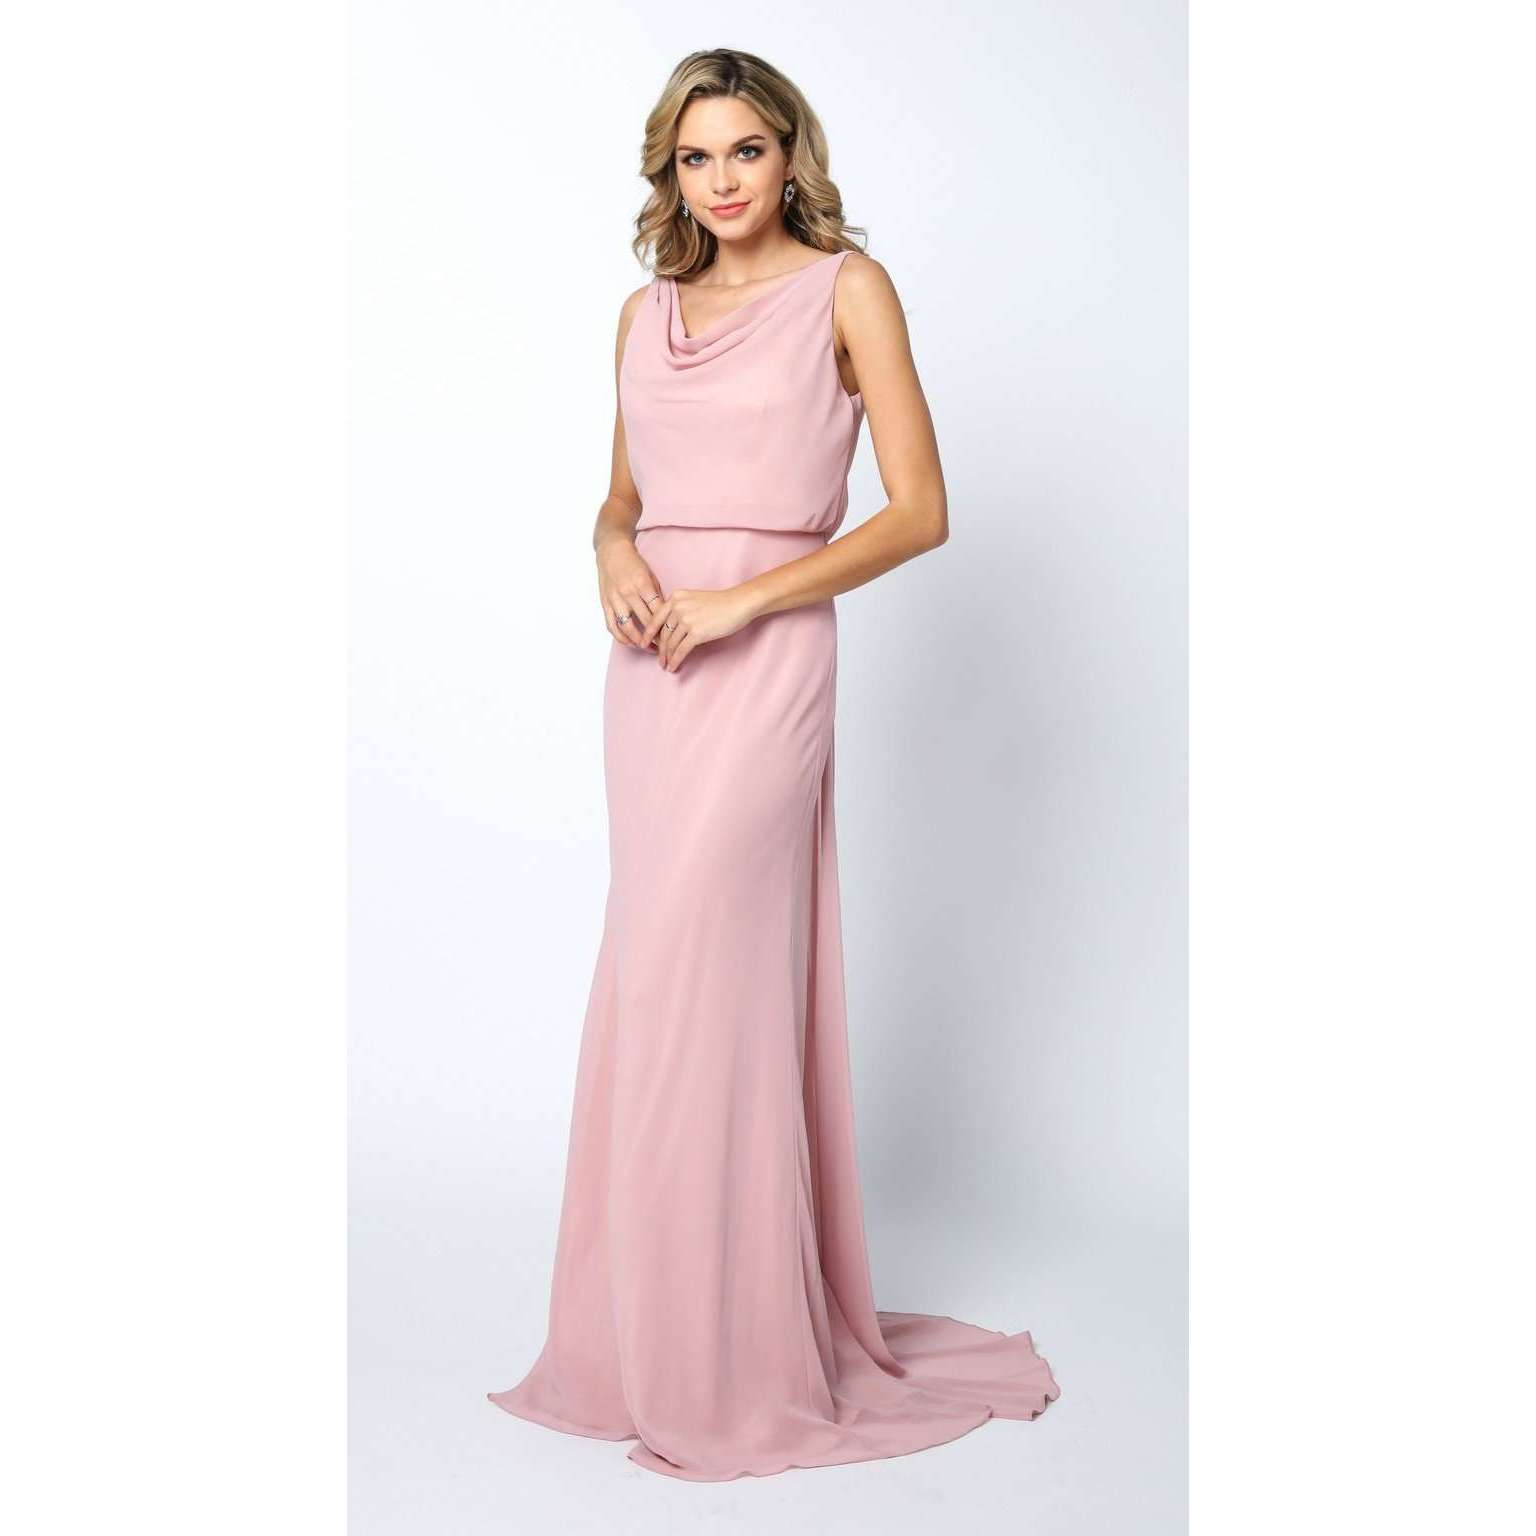 Sleeveless Formal Chiffon Prom Dress 670 - Julietdresses